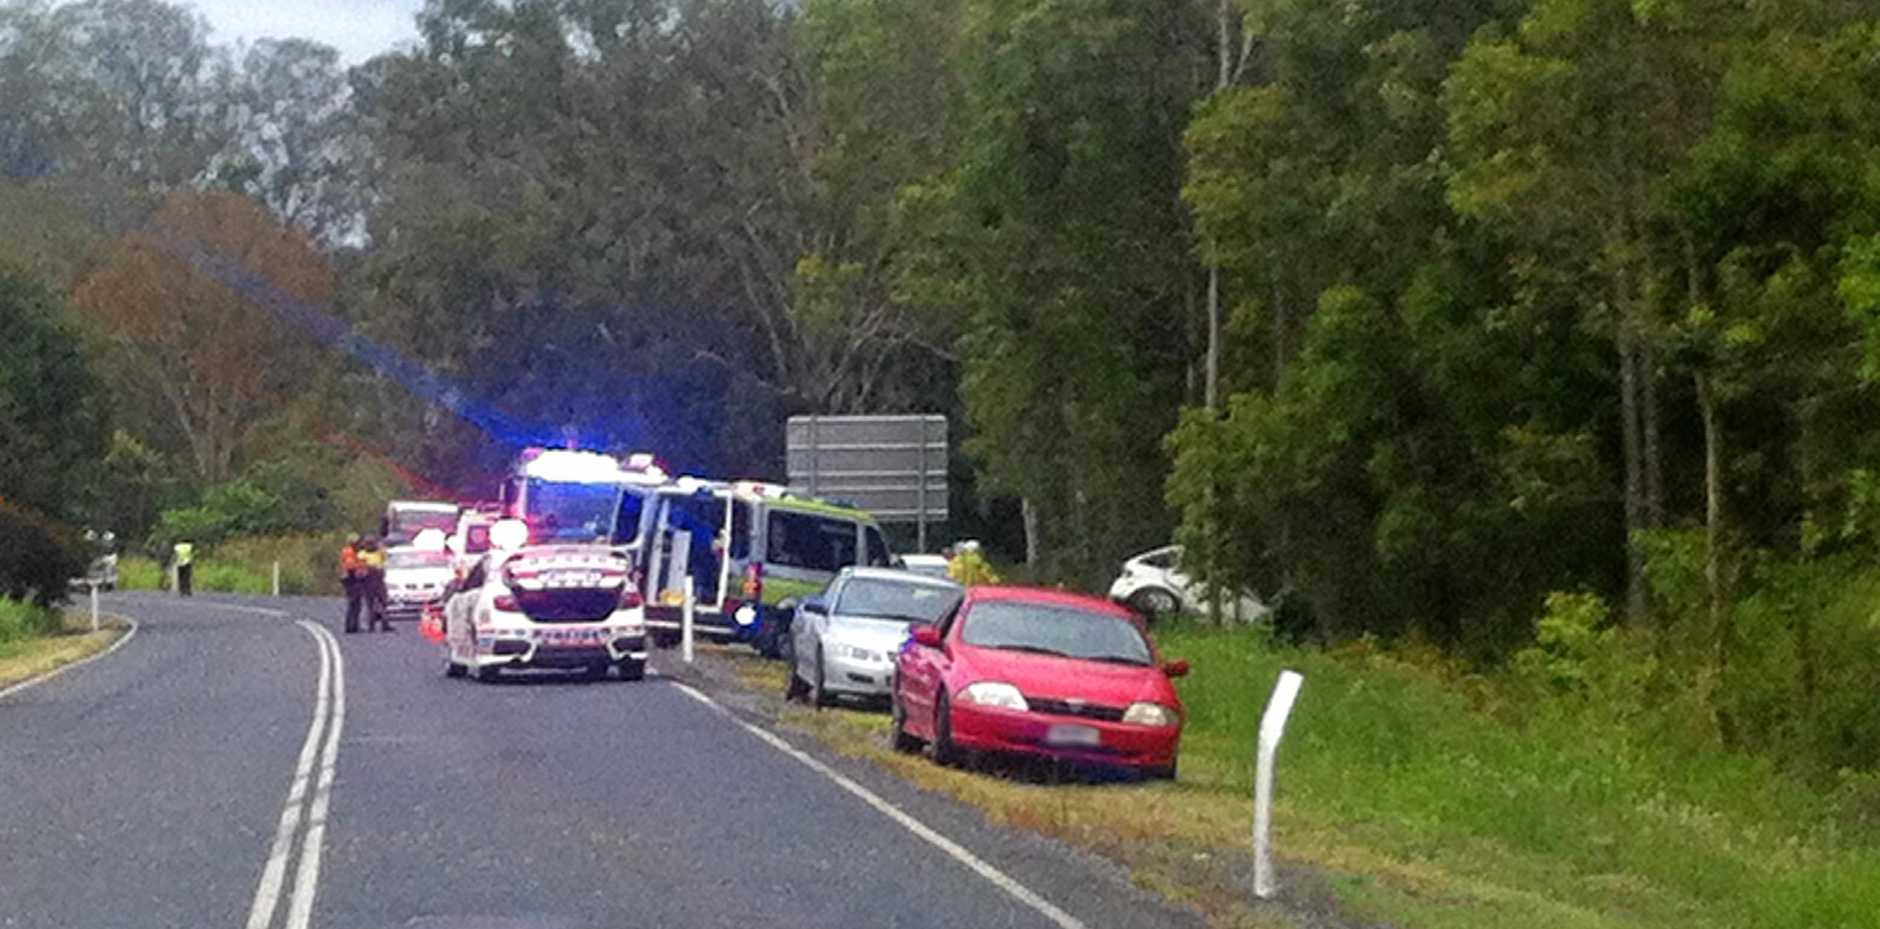 FRIDAY is danger day for accidents according to a new study by Sunshine Coast-based insurance group Youi.